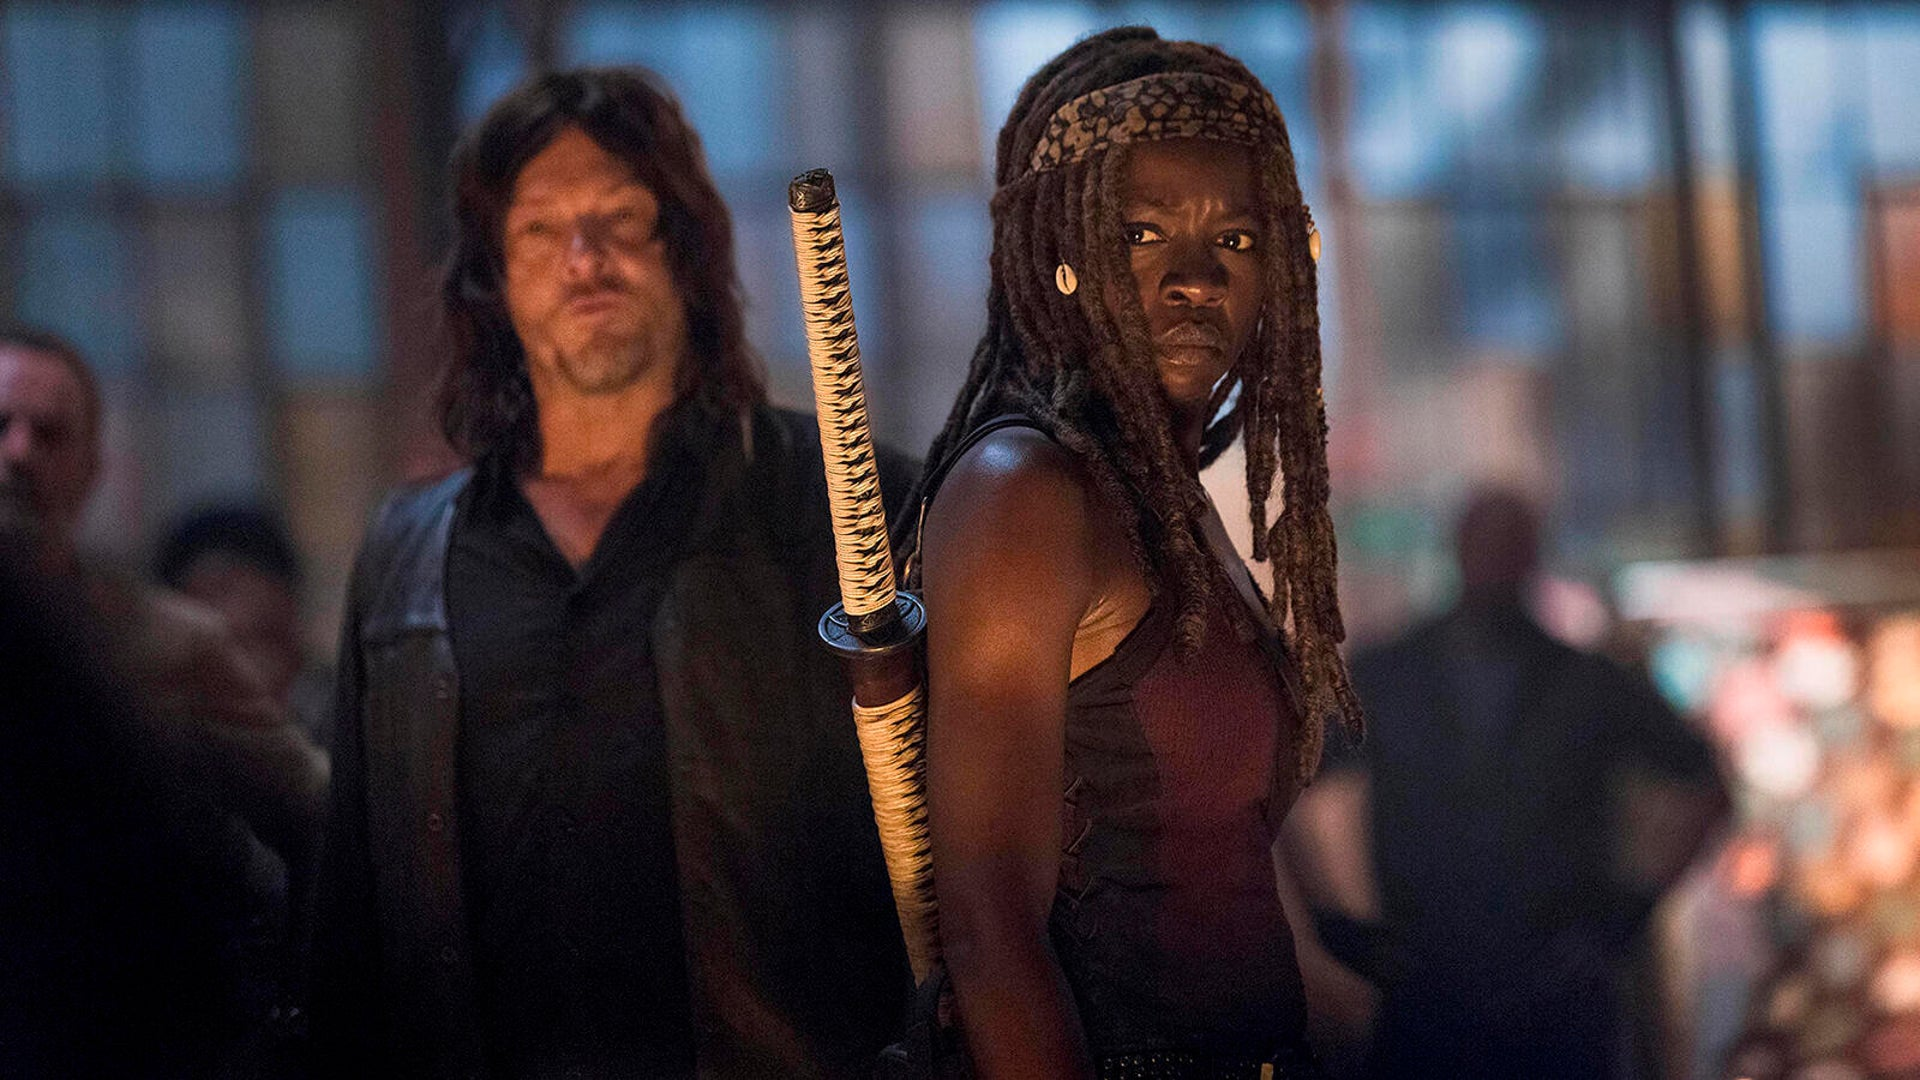 Norman Reedus and Danai Gurira, The Walking Dead